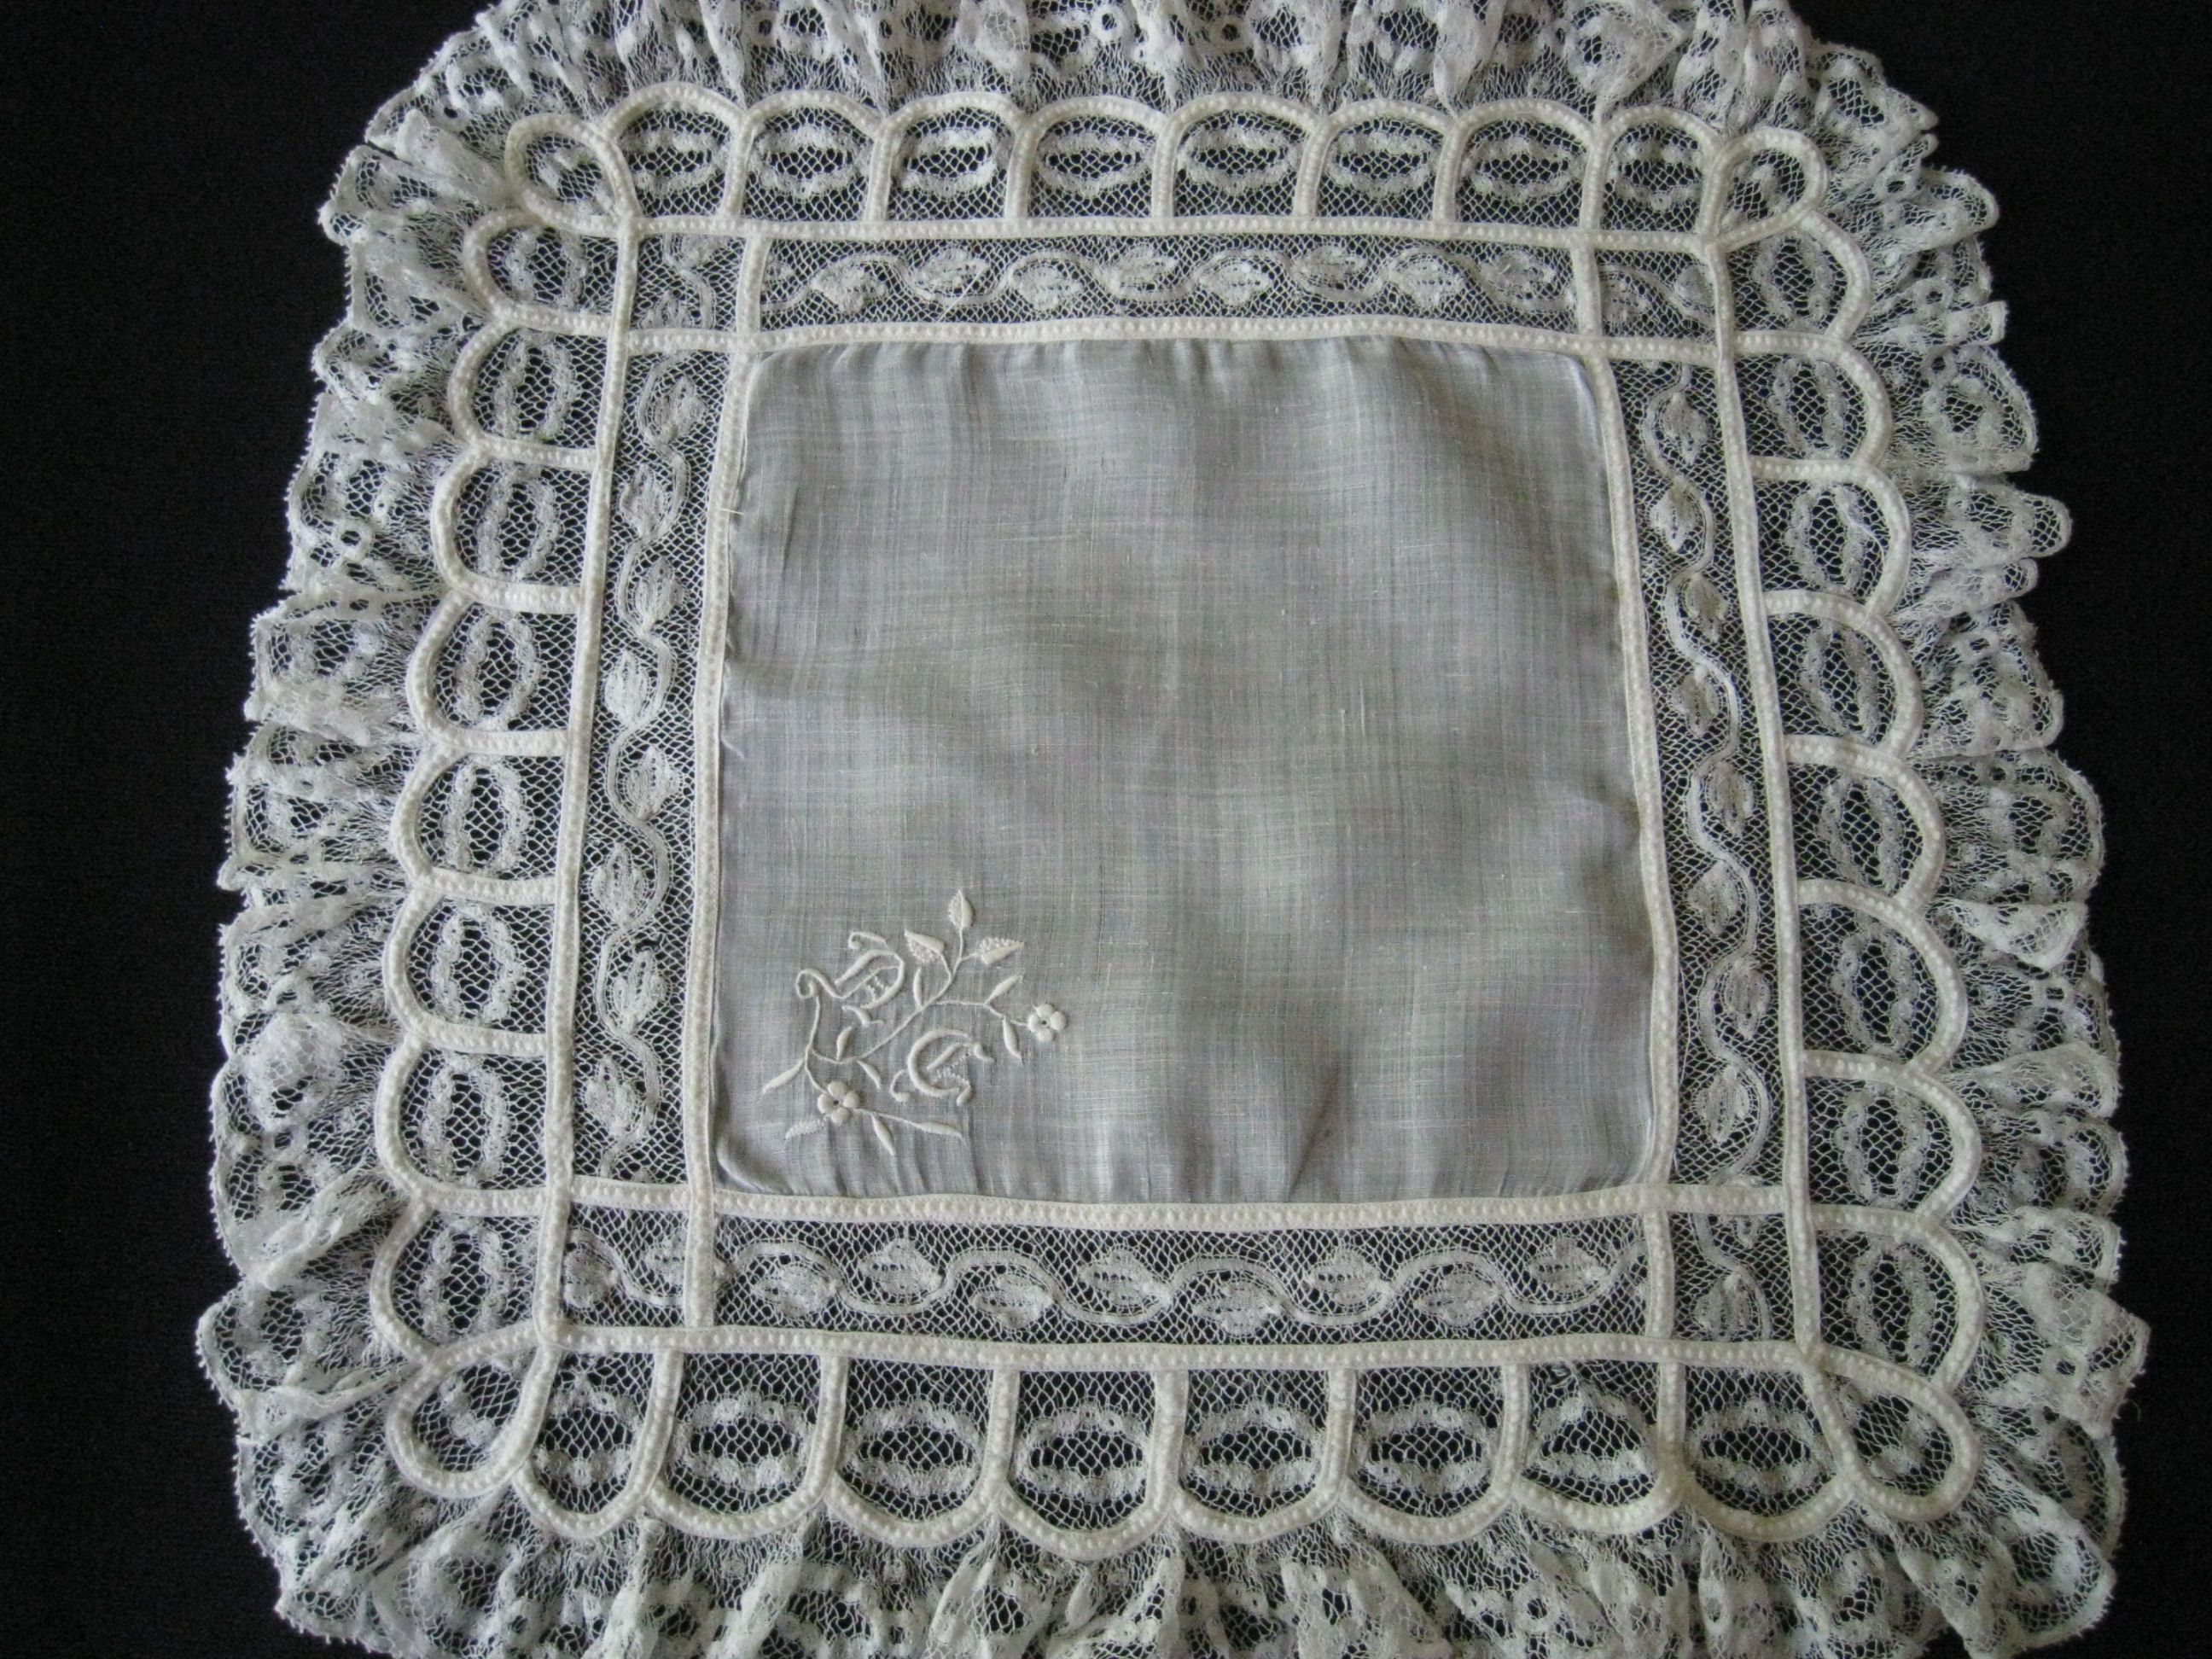 Antique Wedding Hankie Embroidery Lace and Monogram